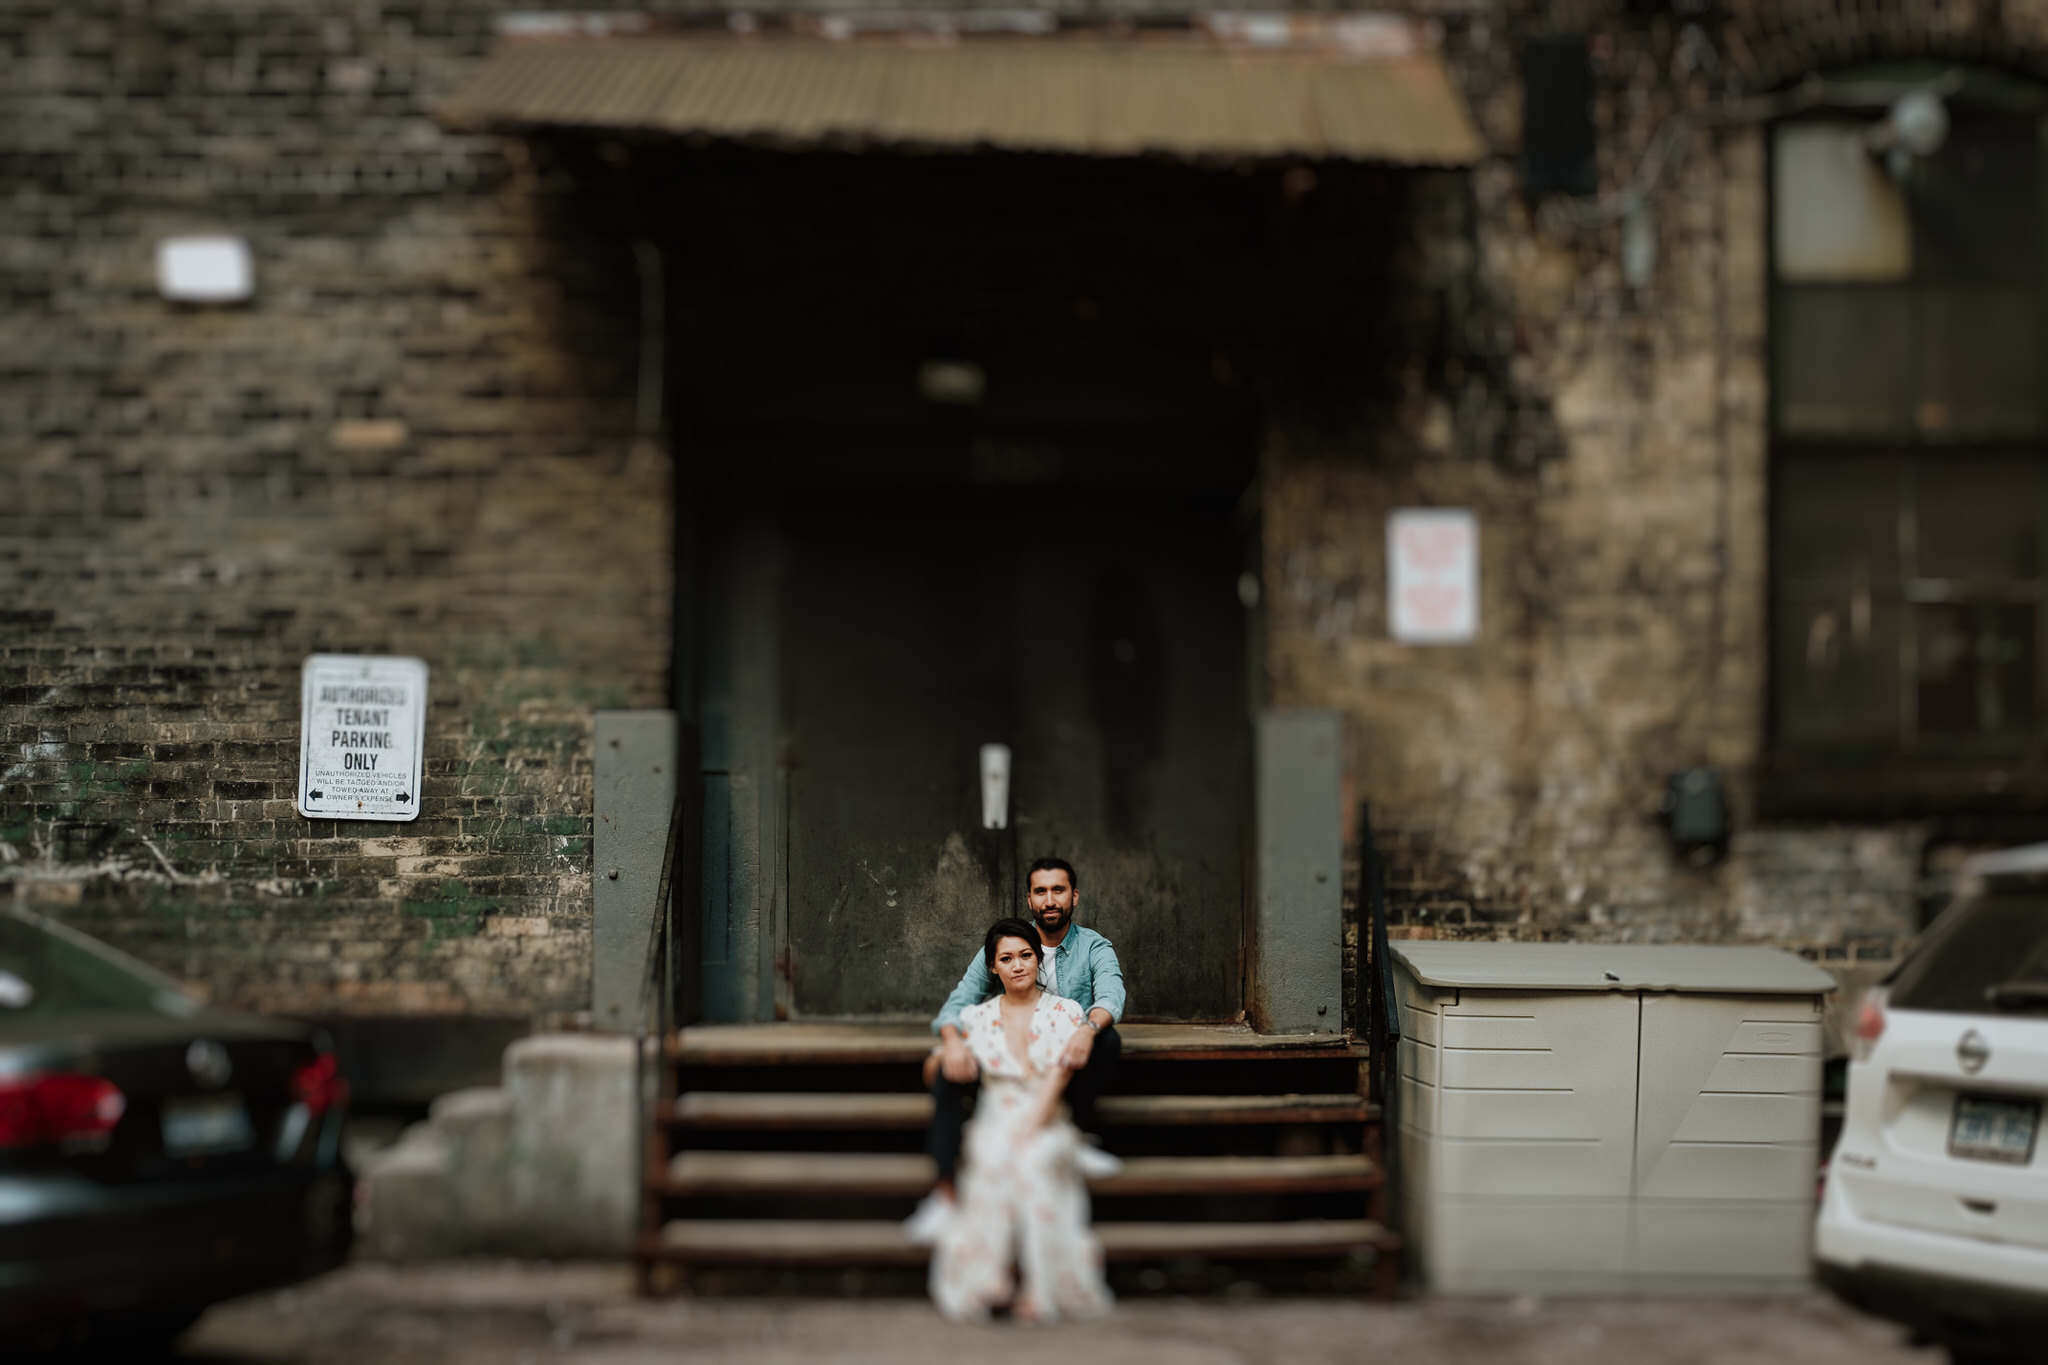 queen west engagement, toronto engagement photos, queen street west, toronto wedding photographer, graffiti alley